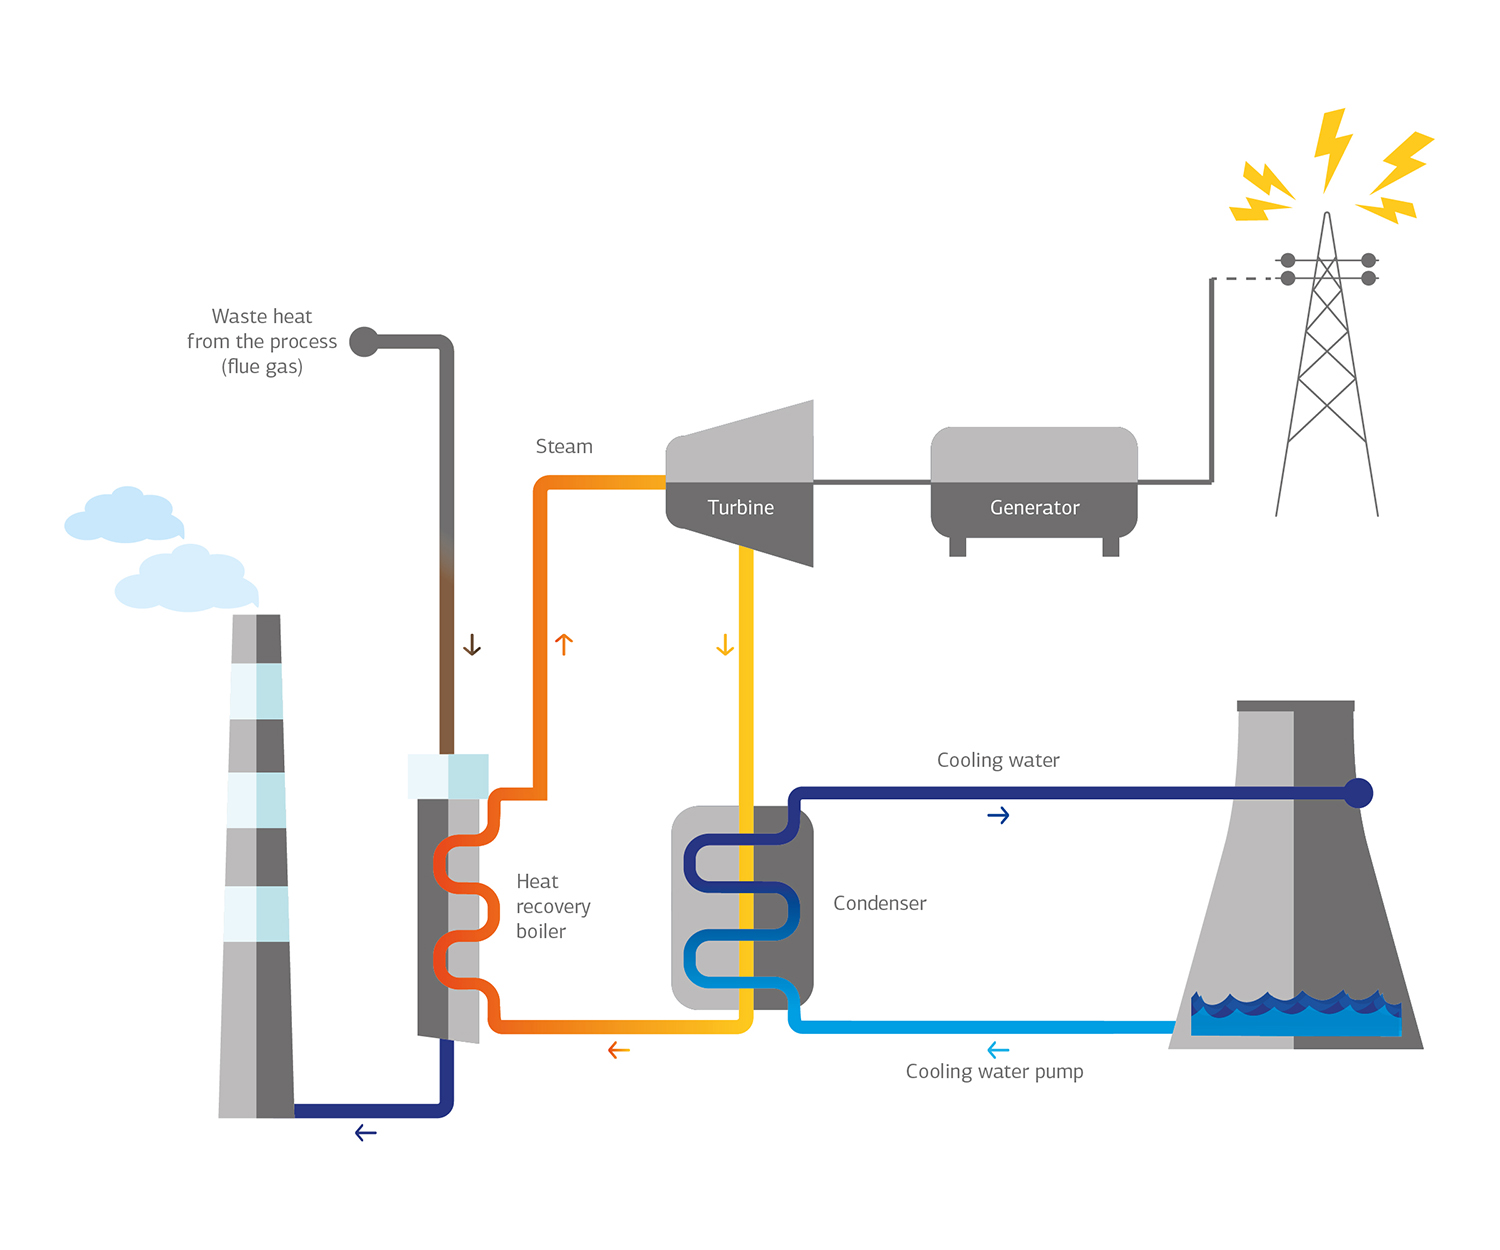 Process of waste heat recovery systems